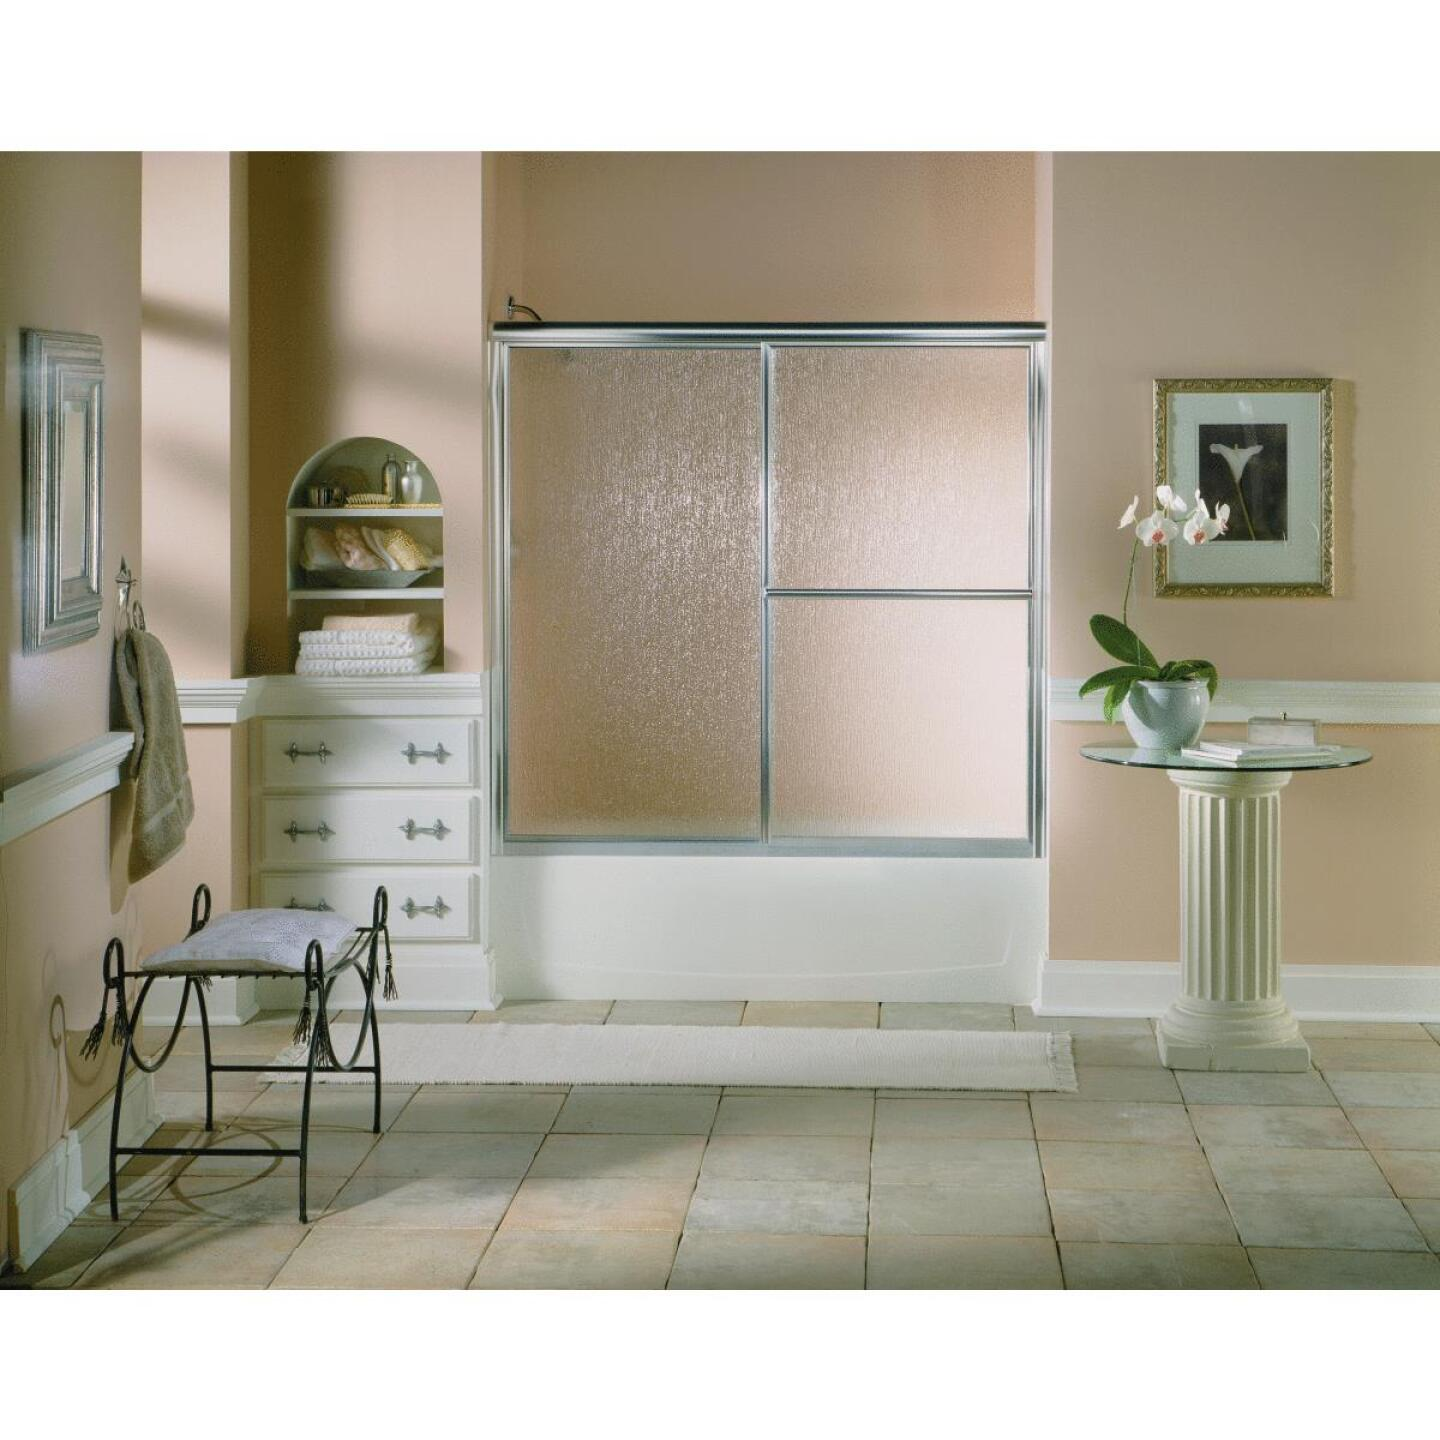 Sterling Deluxe Framed 59-3/8 In. W. X 56-1/4 In. H. Chrome Rain Glass Sliding Tub Door Image 3